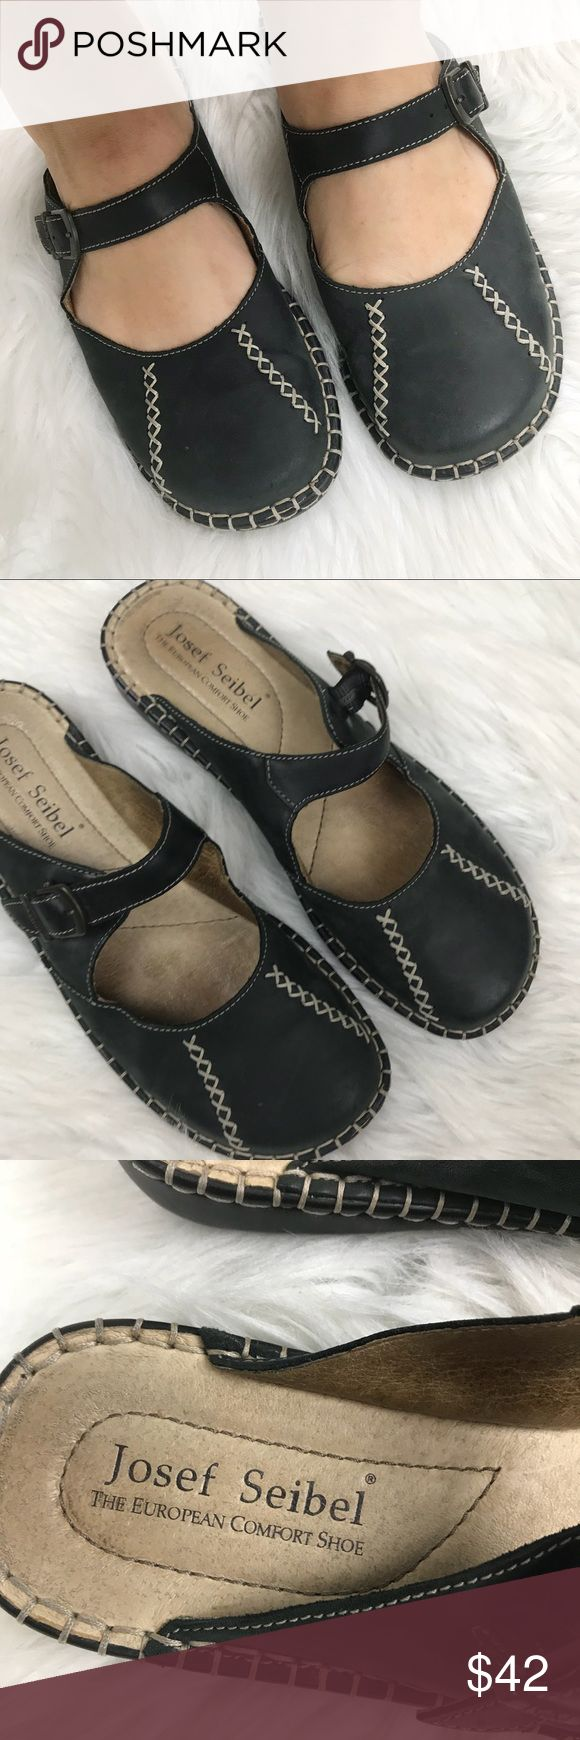 Josef Seibel Black Leather Slip on Mary Janes 40 9 Josef Seibel comfort walking backless leather Mary Janes.  Gently used condition, very comfortable. Euro size 40 = US 9